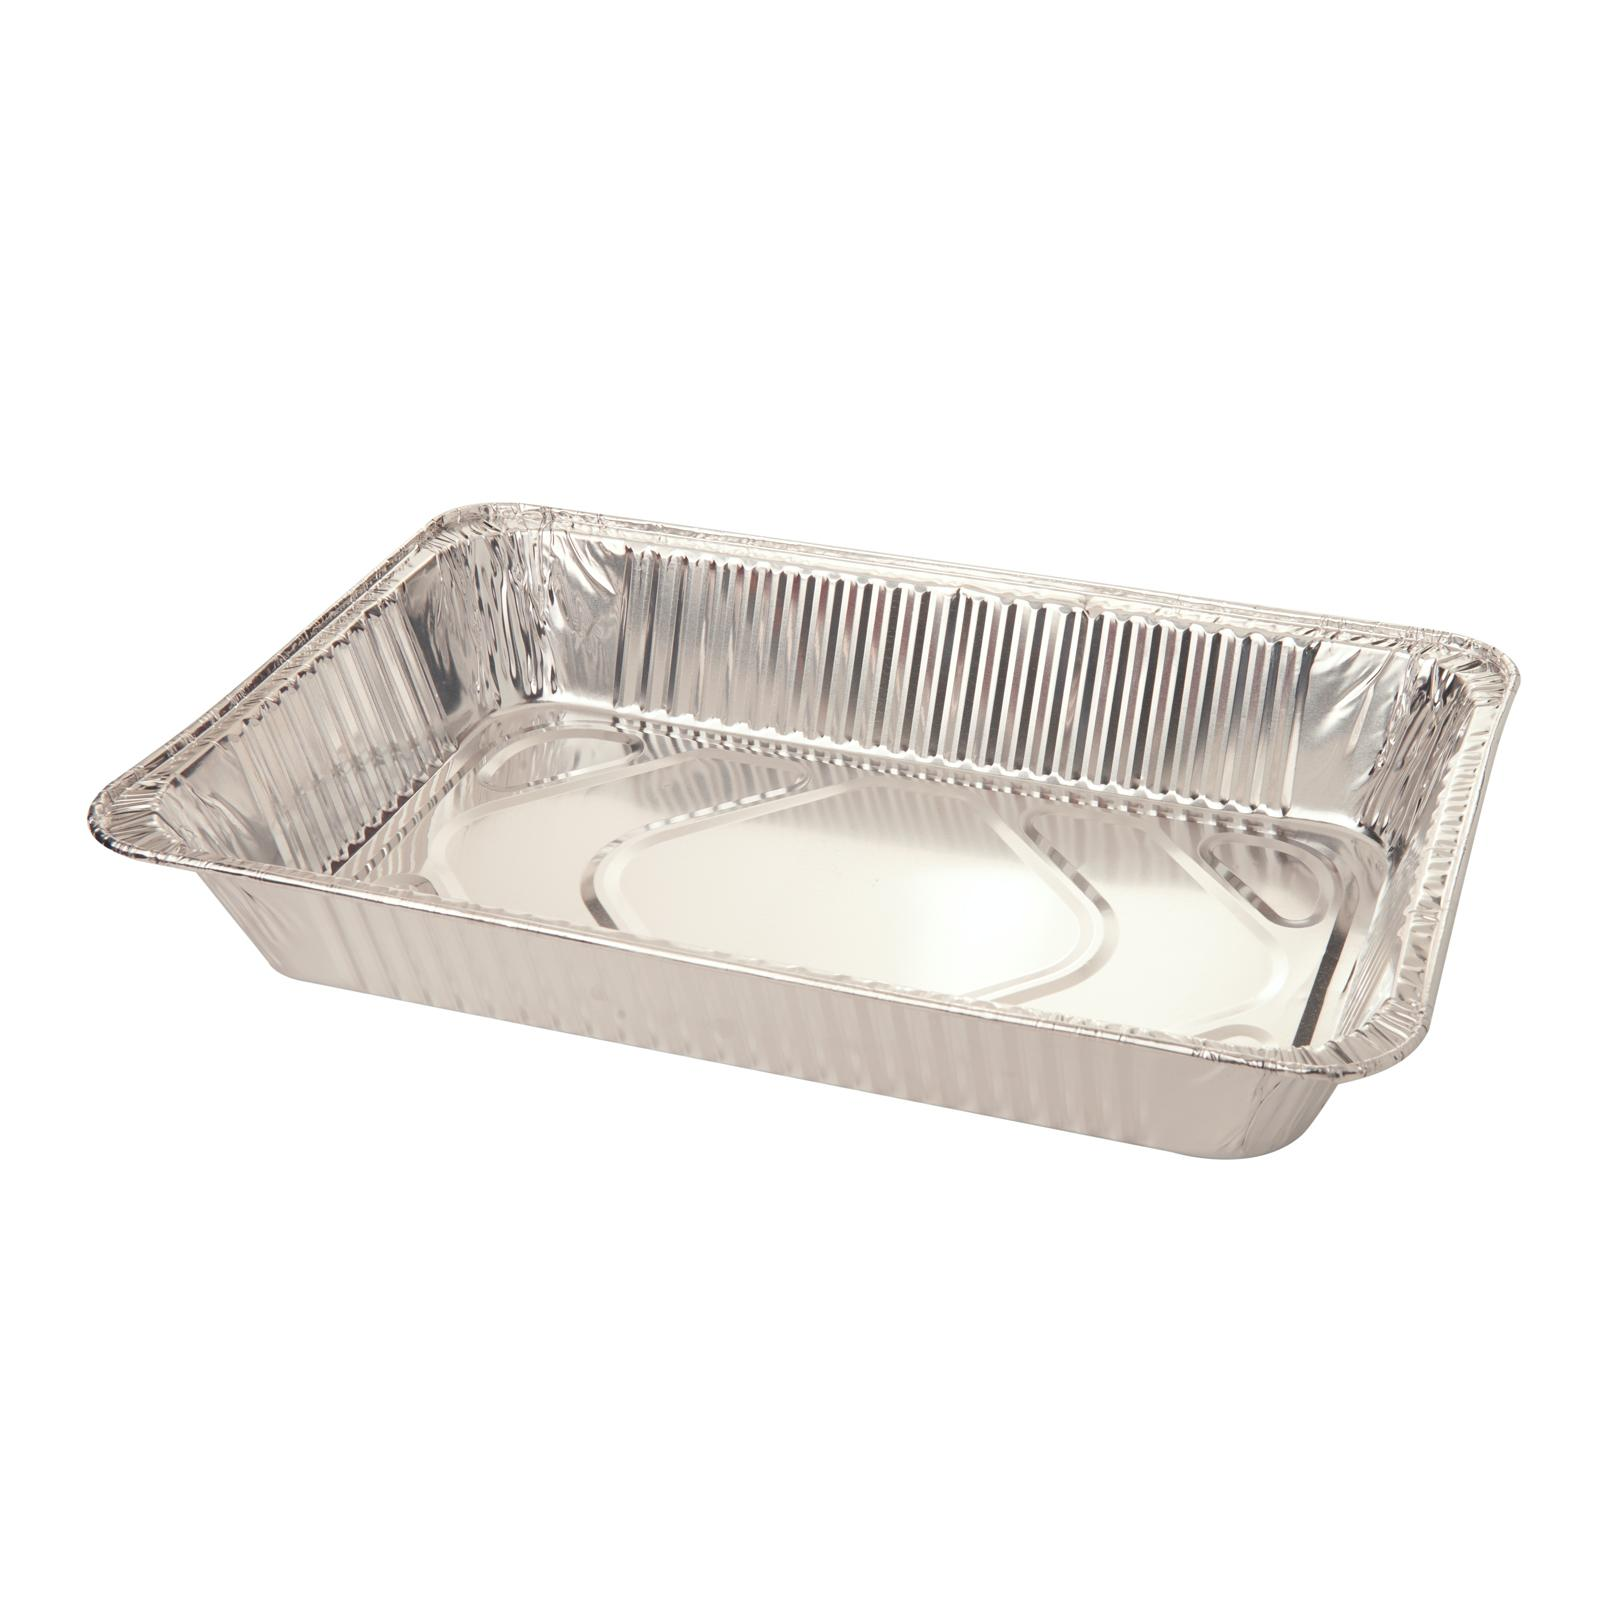 Mr Bel Disposable Large Aluminium Foil Tray